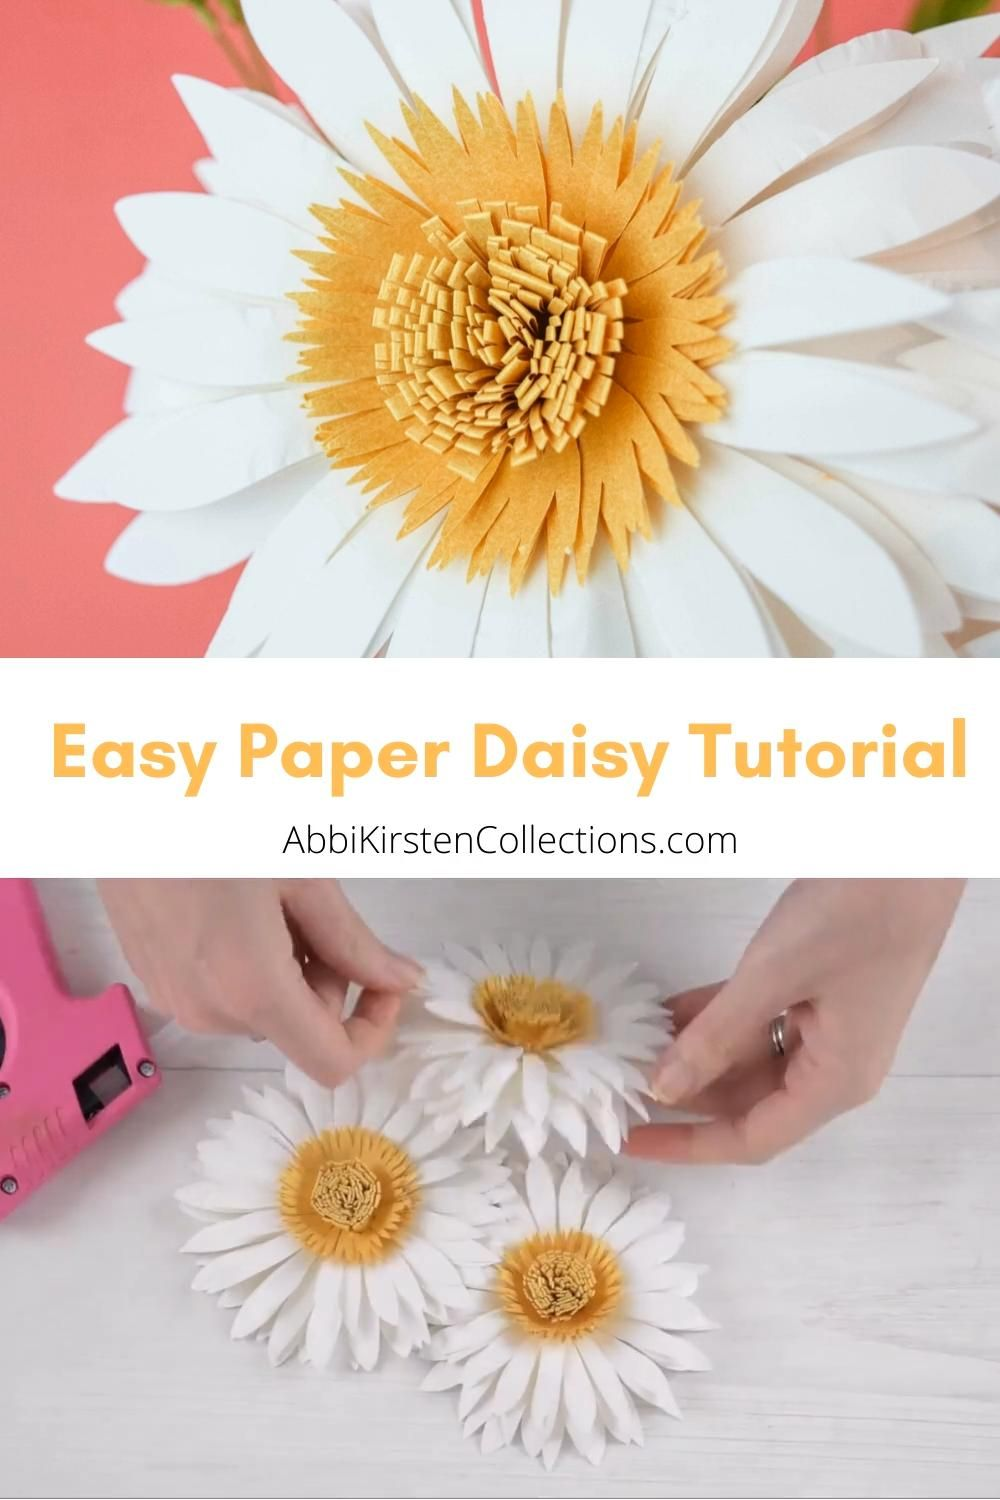 Learn how to make your own paper daisy flower blooms with this step by step tutorial. Download the templates to create your own with scissors or a cutting machine. Download flower templates here.